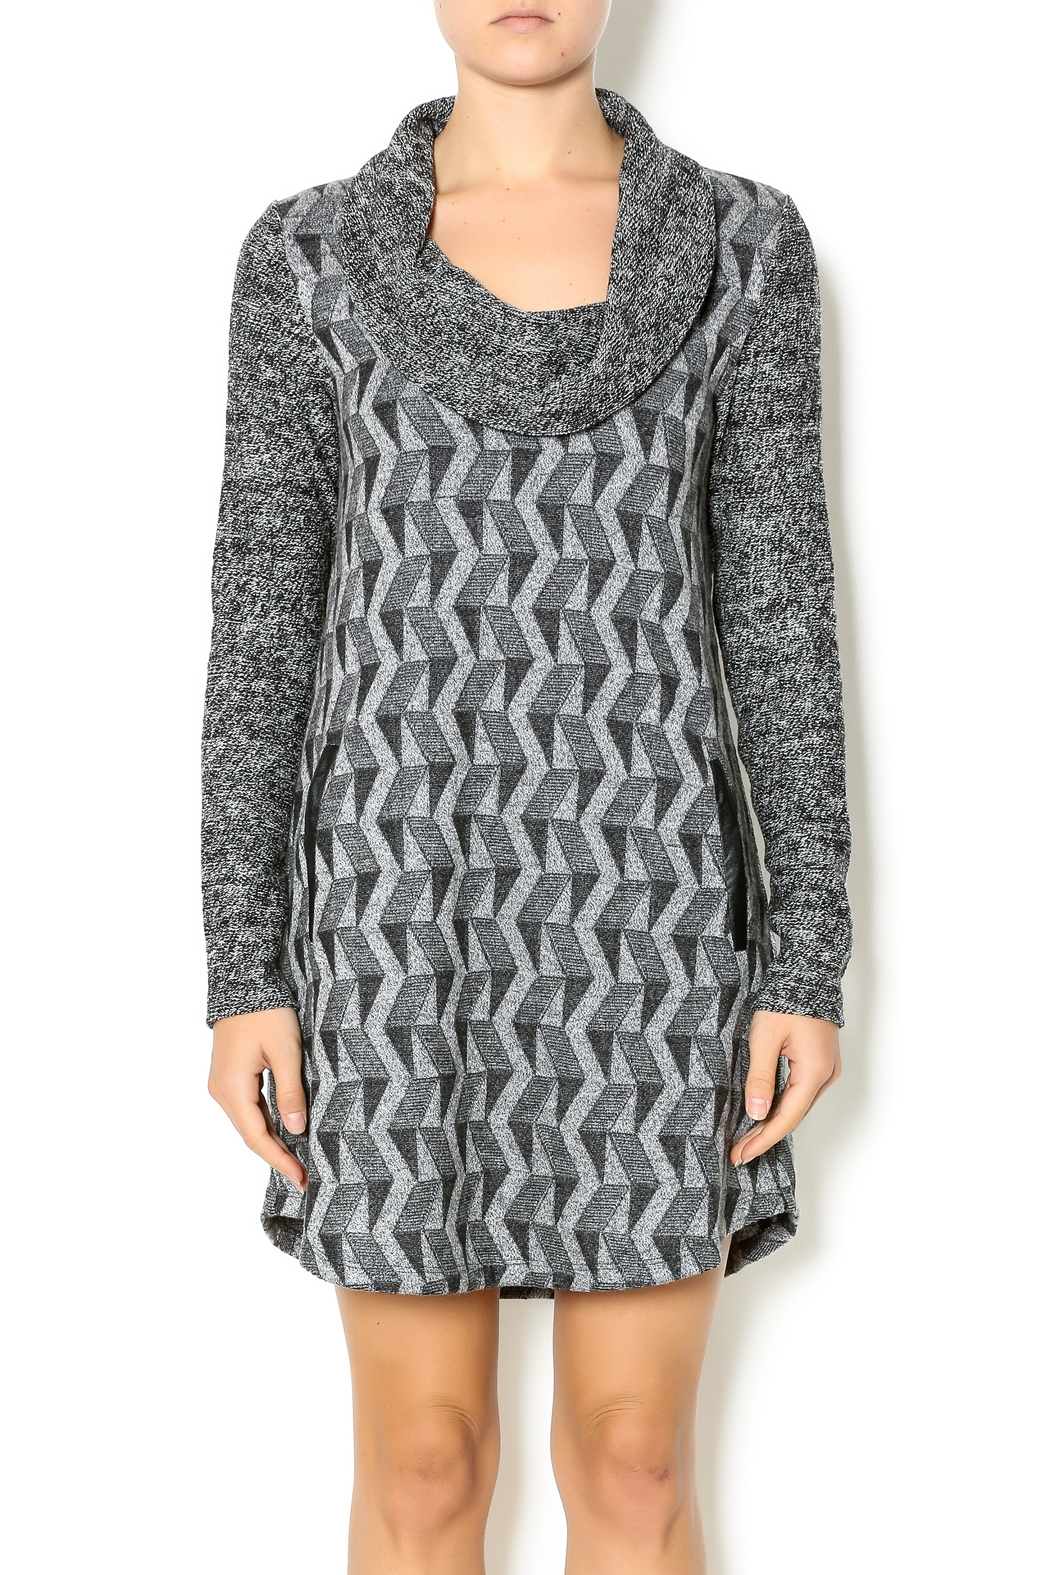 680bc3ba9874 THML Clothing Jacquard Knit Dress from Atlanta by Sole shoes ...